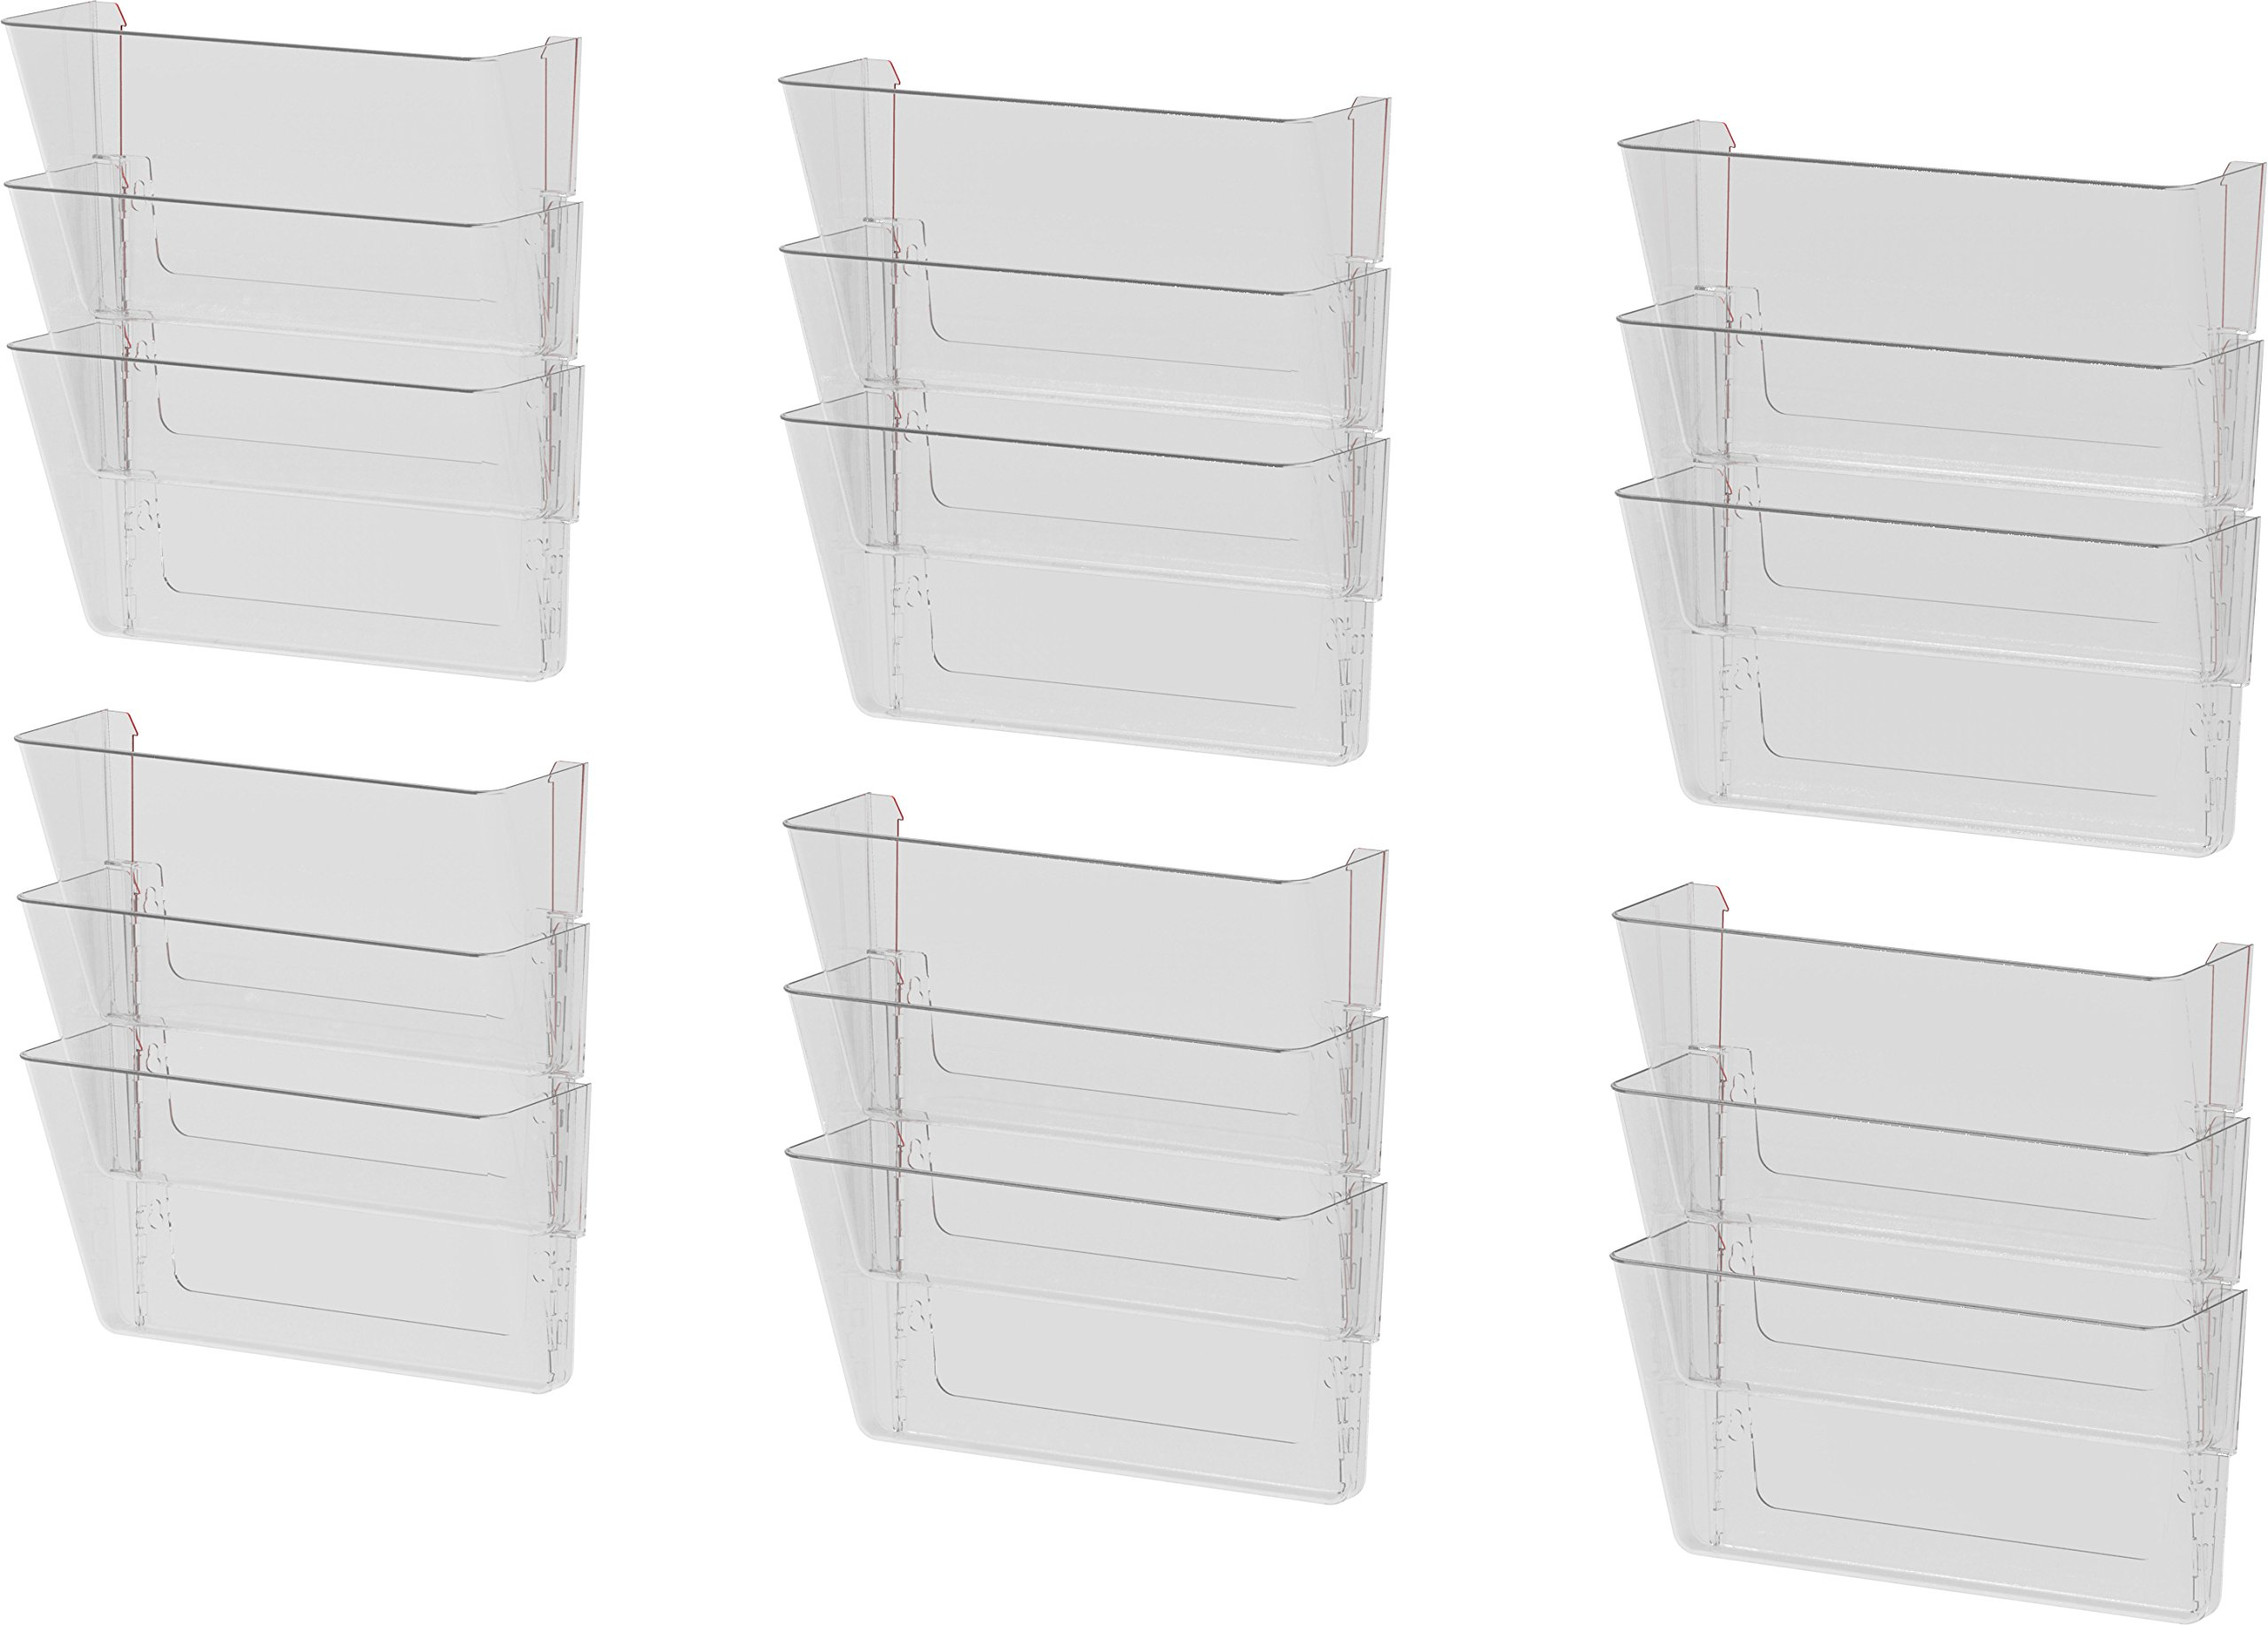 Storex Wall Files, 13 x 4 x 7 Inches, Letter, Clear, Case of 6 3-Packs (70245U06C)